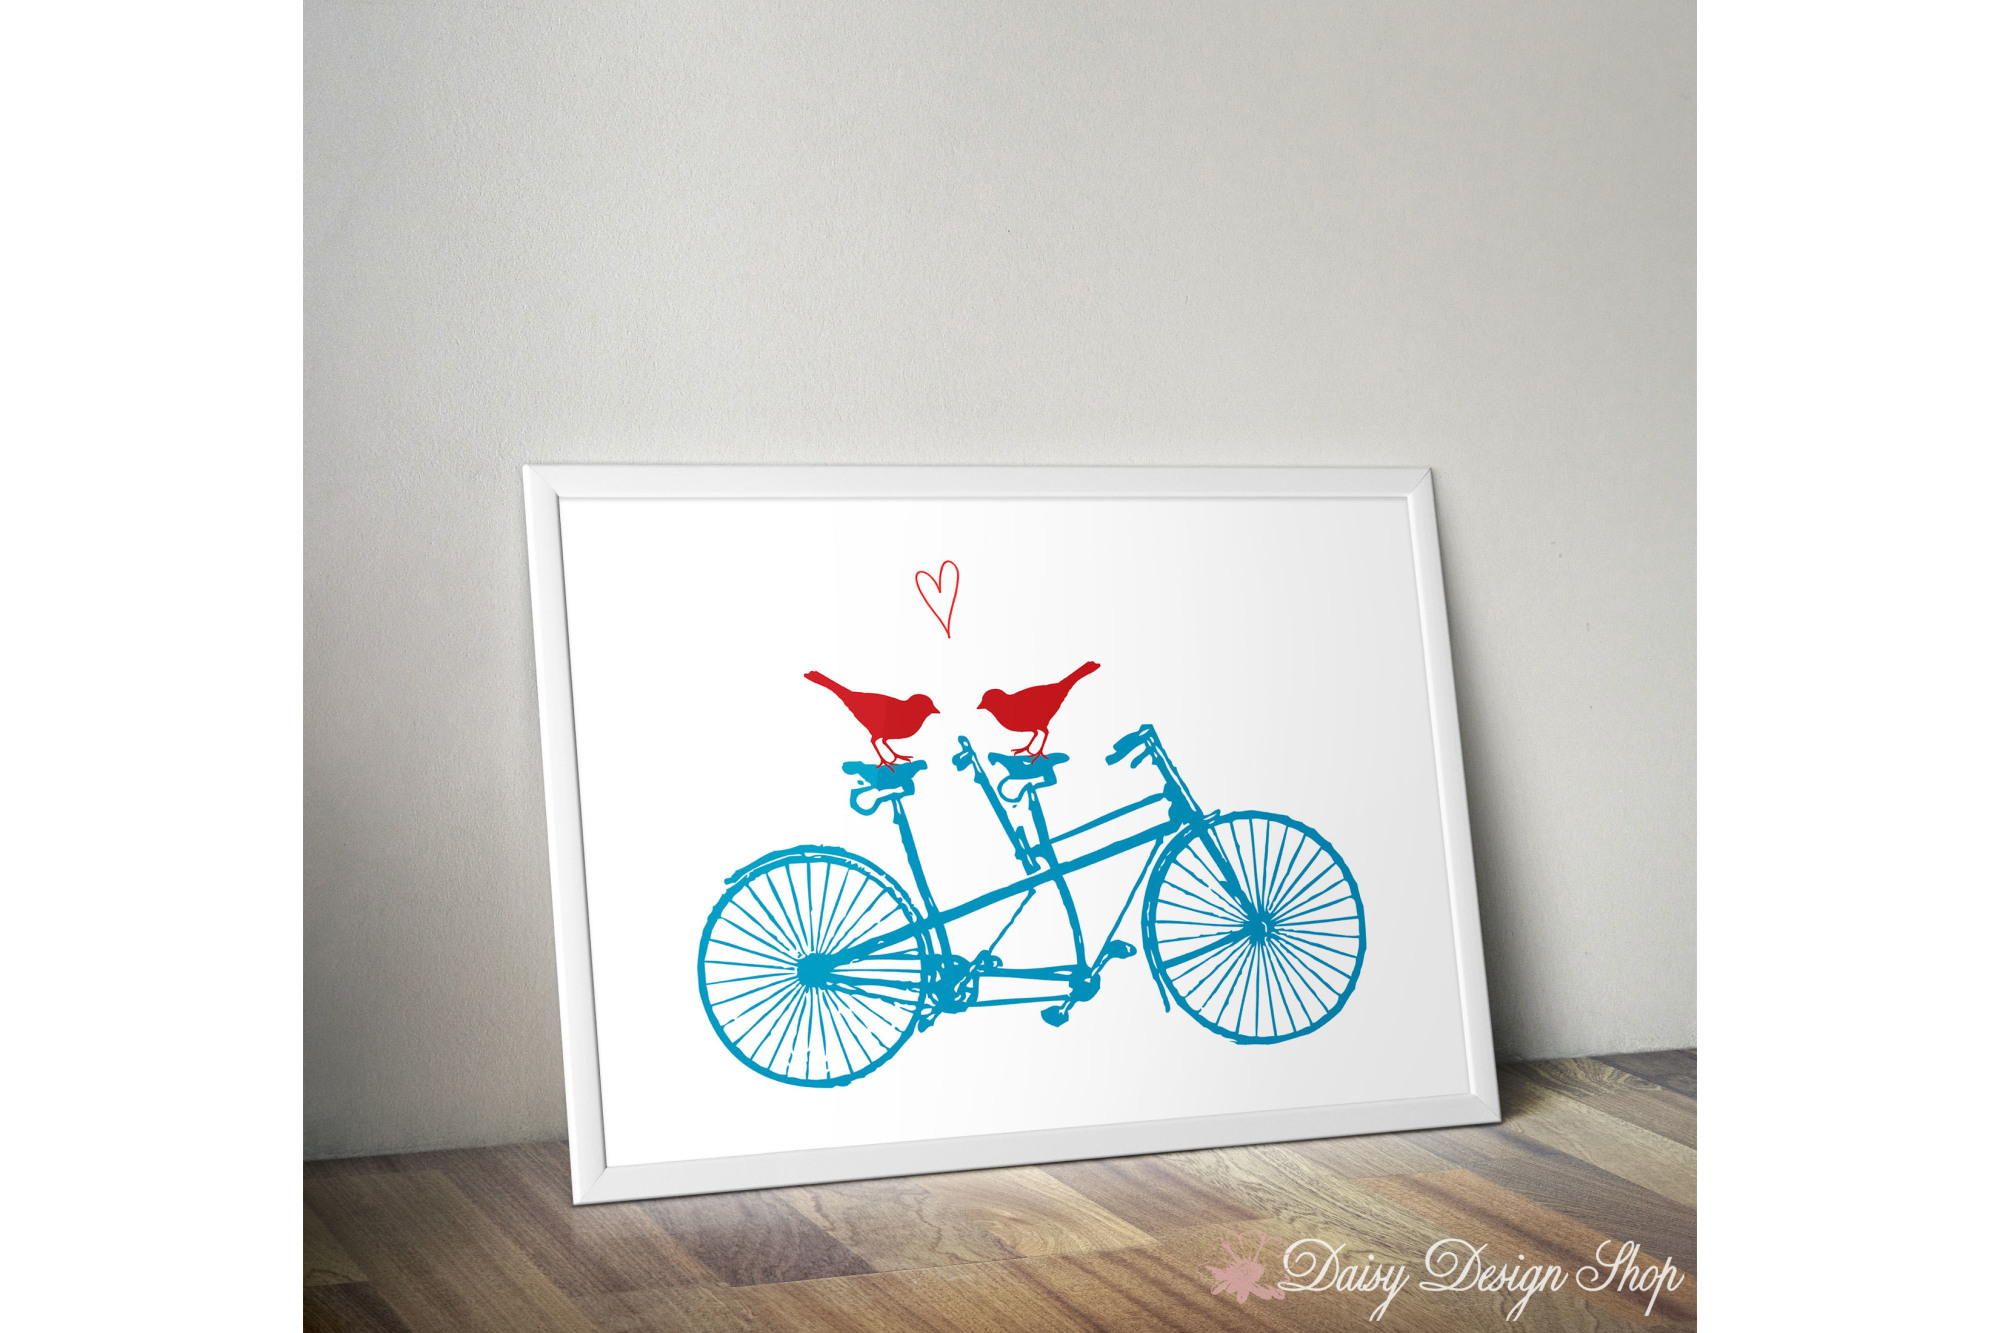 Art Print - Bicycle Two-Seater with Birds and Heart - 8x10 Printable example image 1